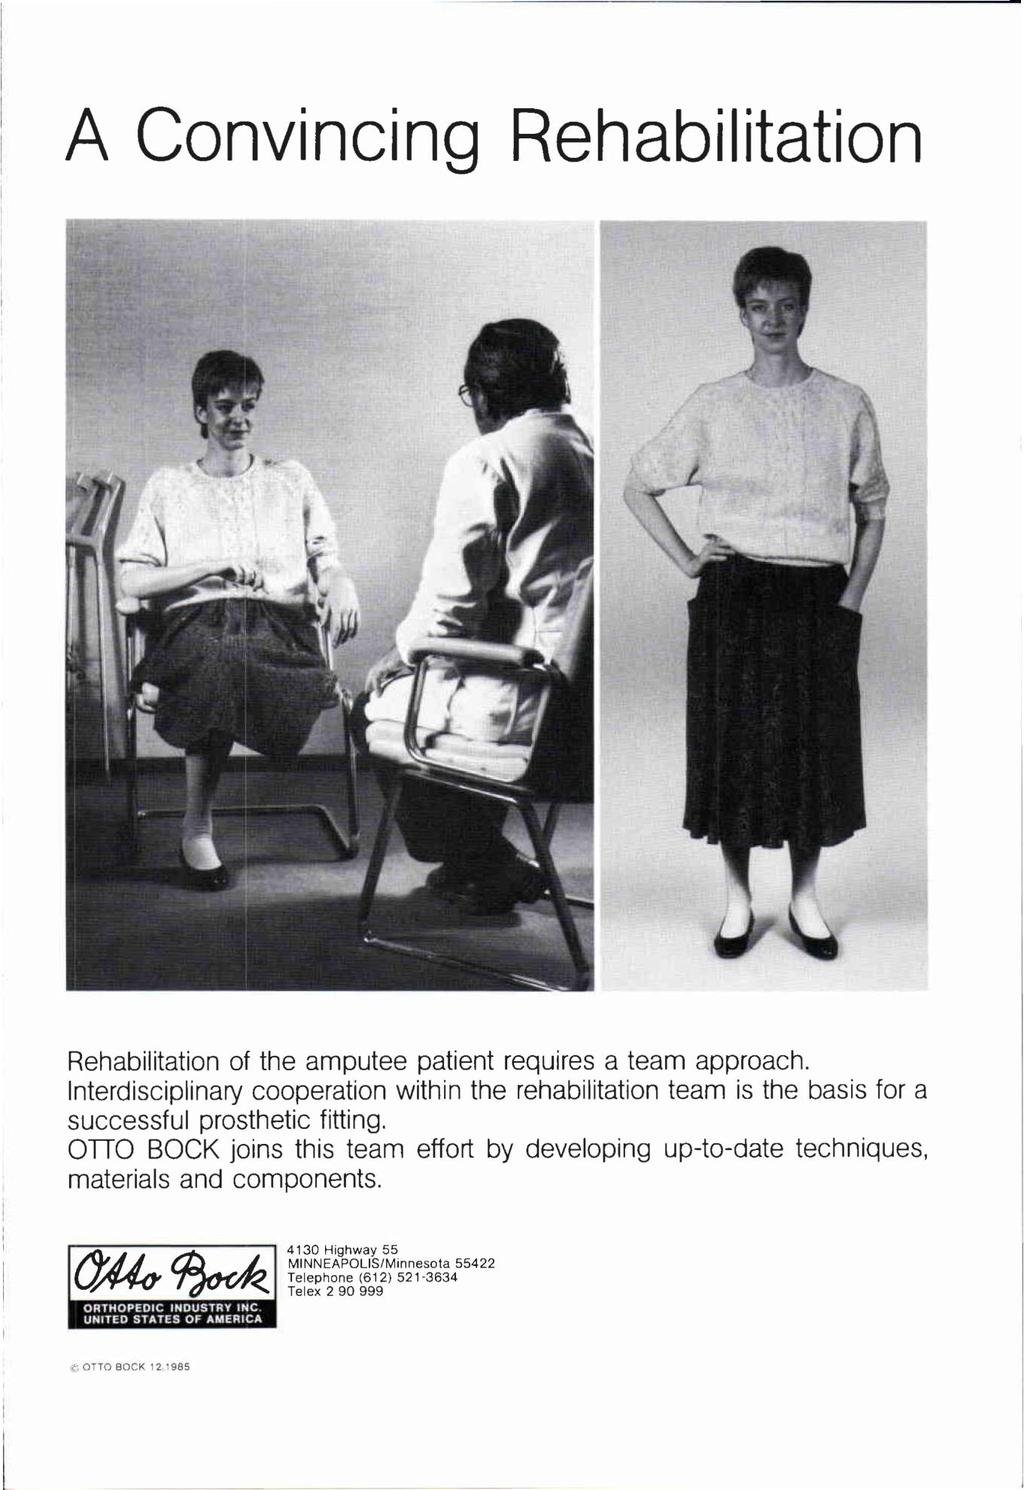 Volume 40 Number 2 Orthotics And Prosthetics Journal Of The Fitti Rainbow Regular S 12x12 12 Bags A Convincing Rehabilitation Amputee Patient Requires Team Approach